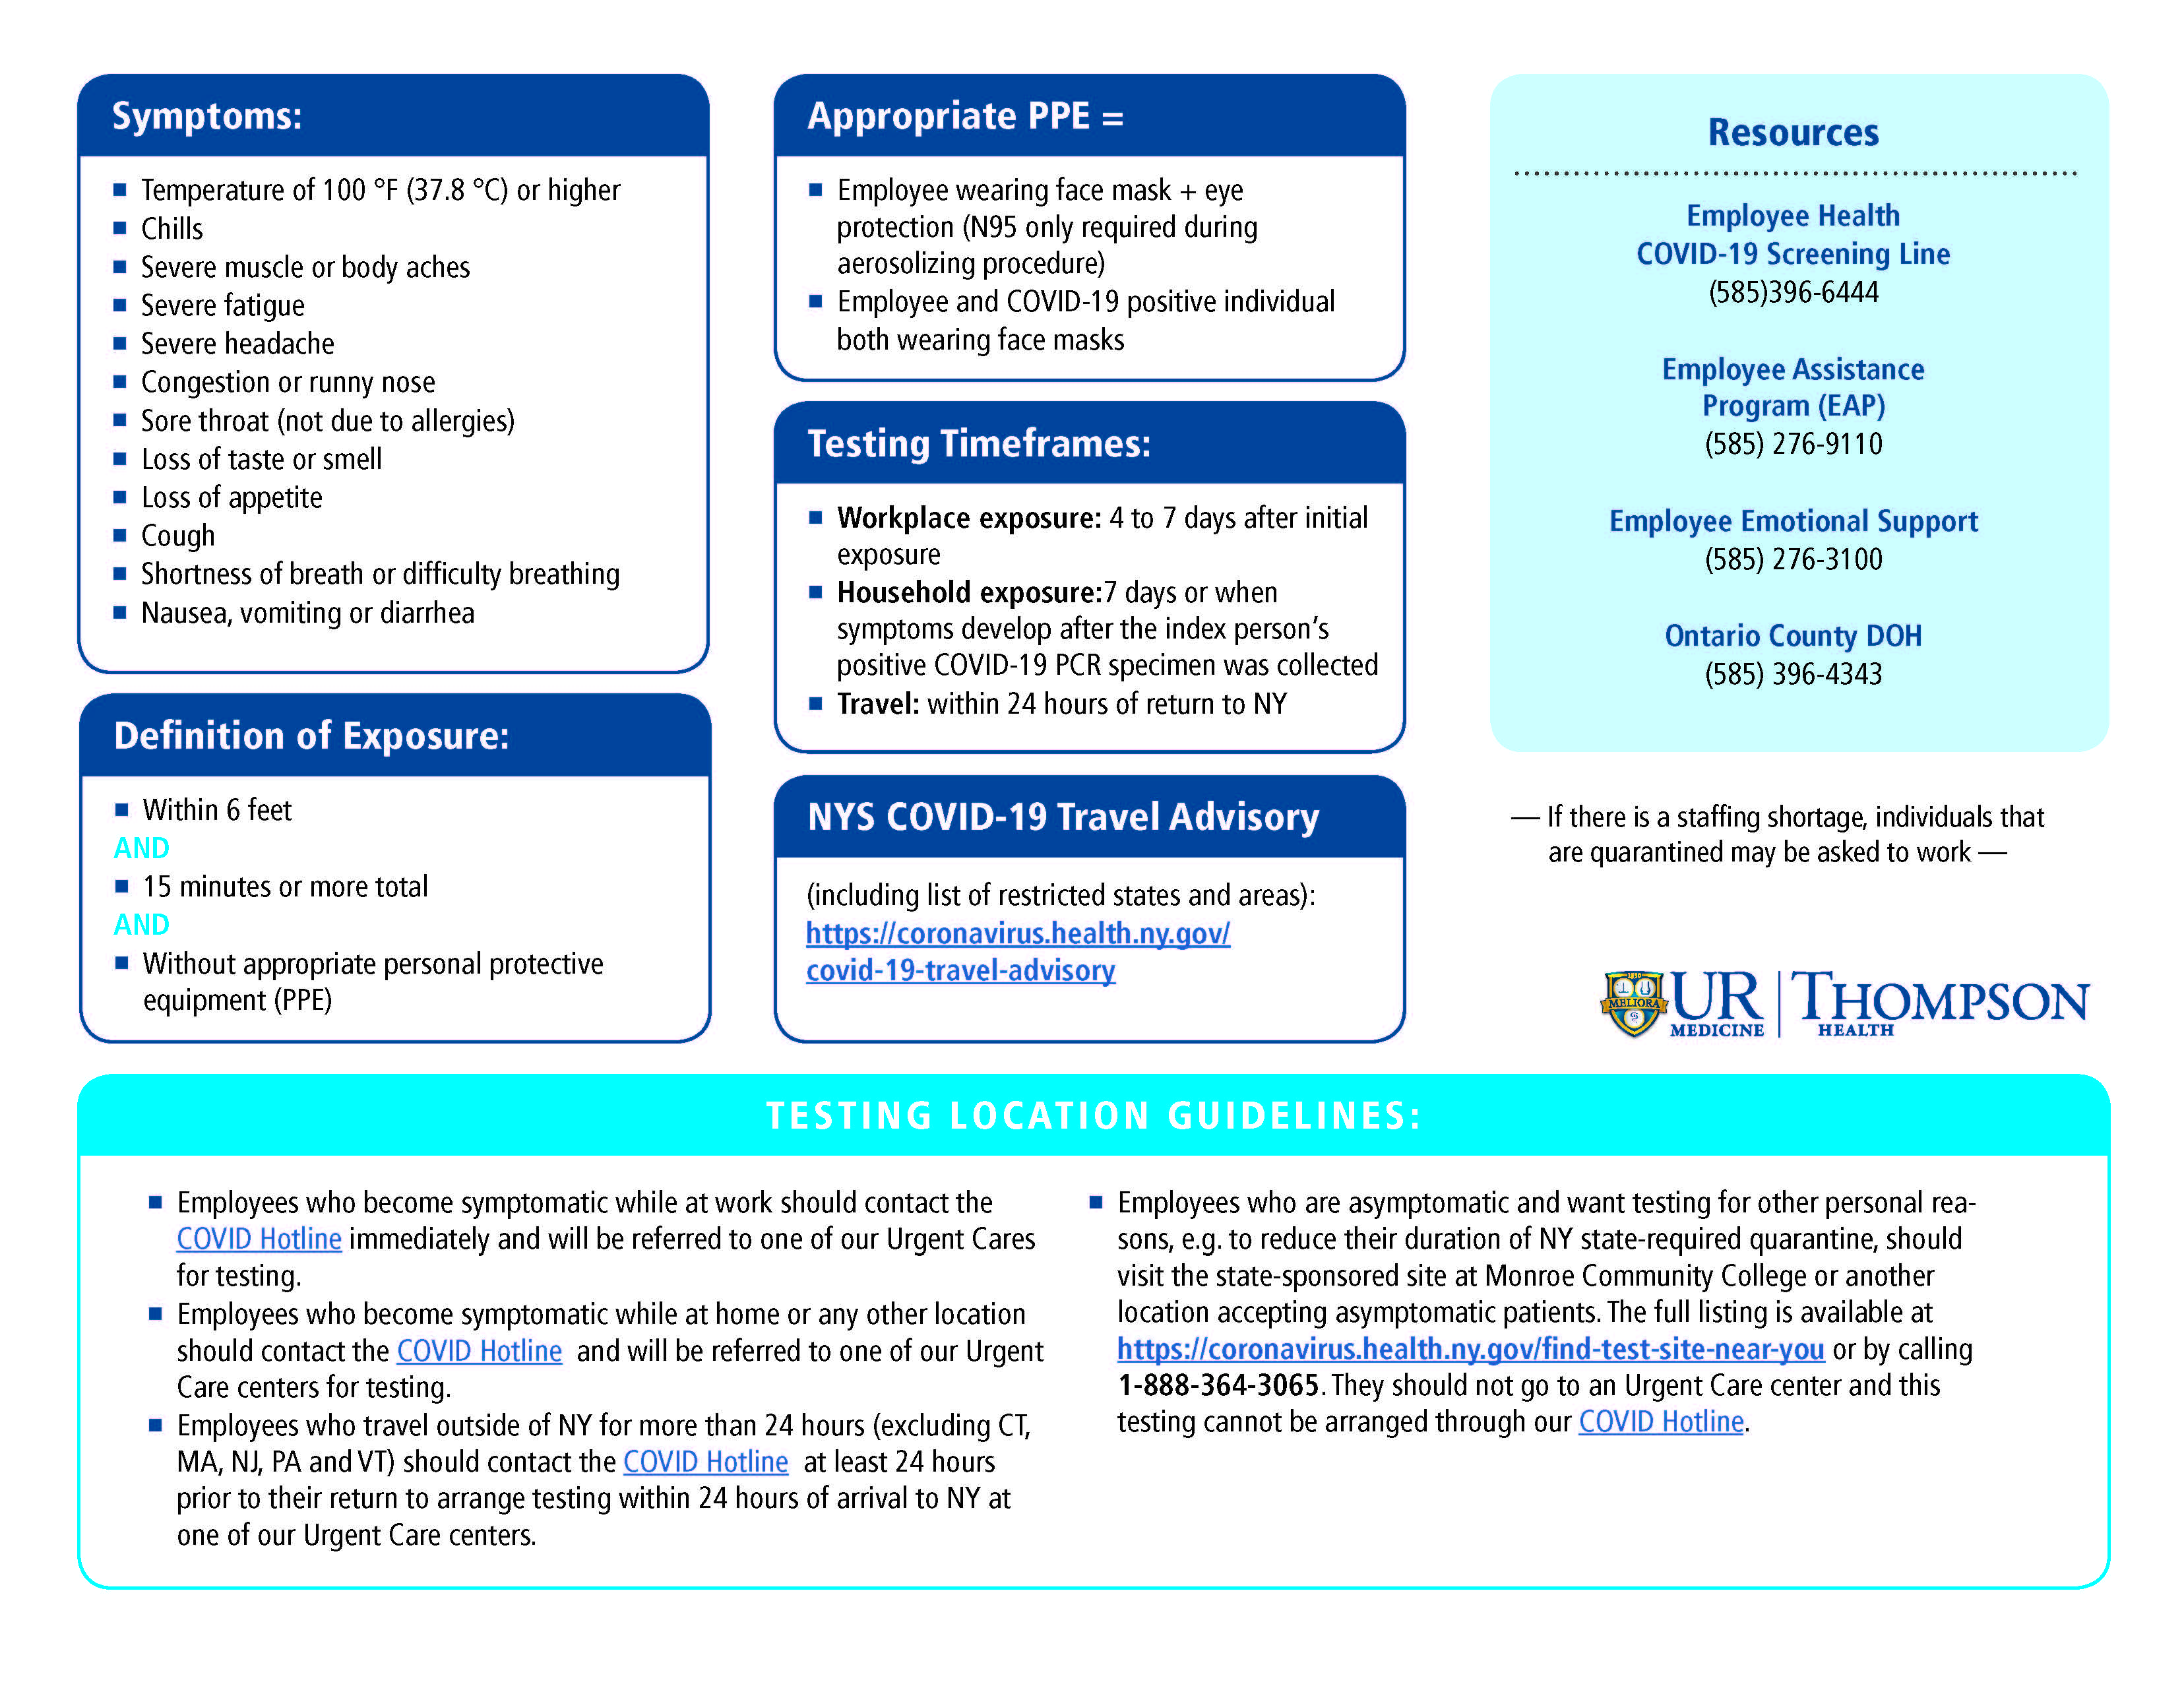 Employee Health COVID Screening, Testing and Monitoring Algorithm page 2